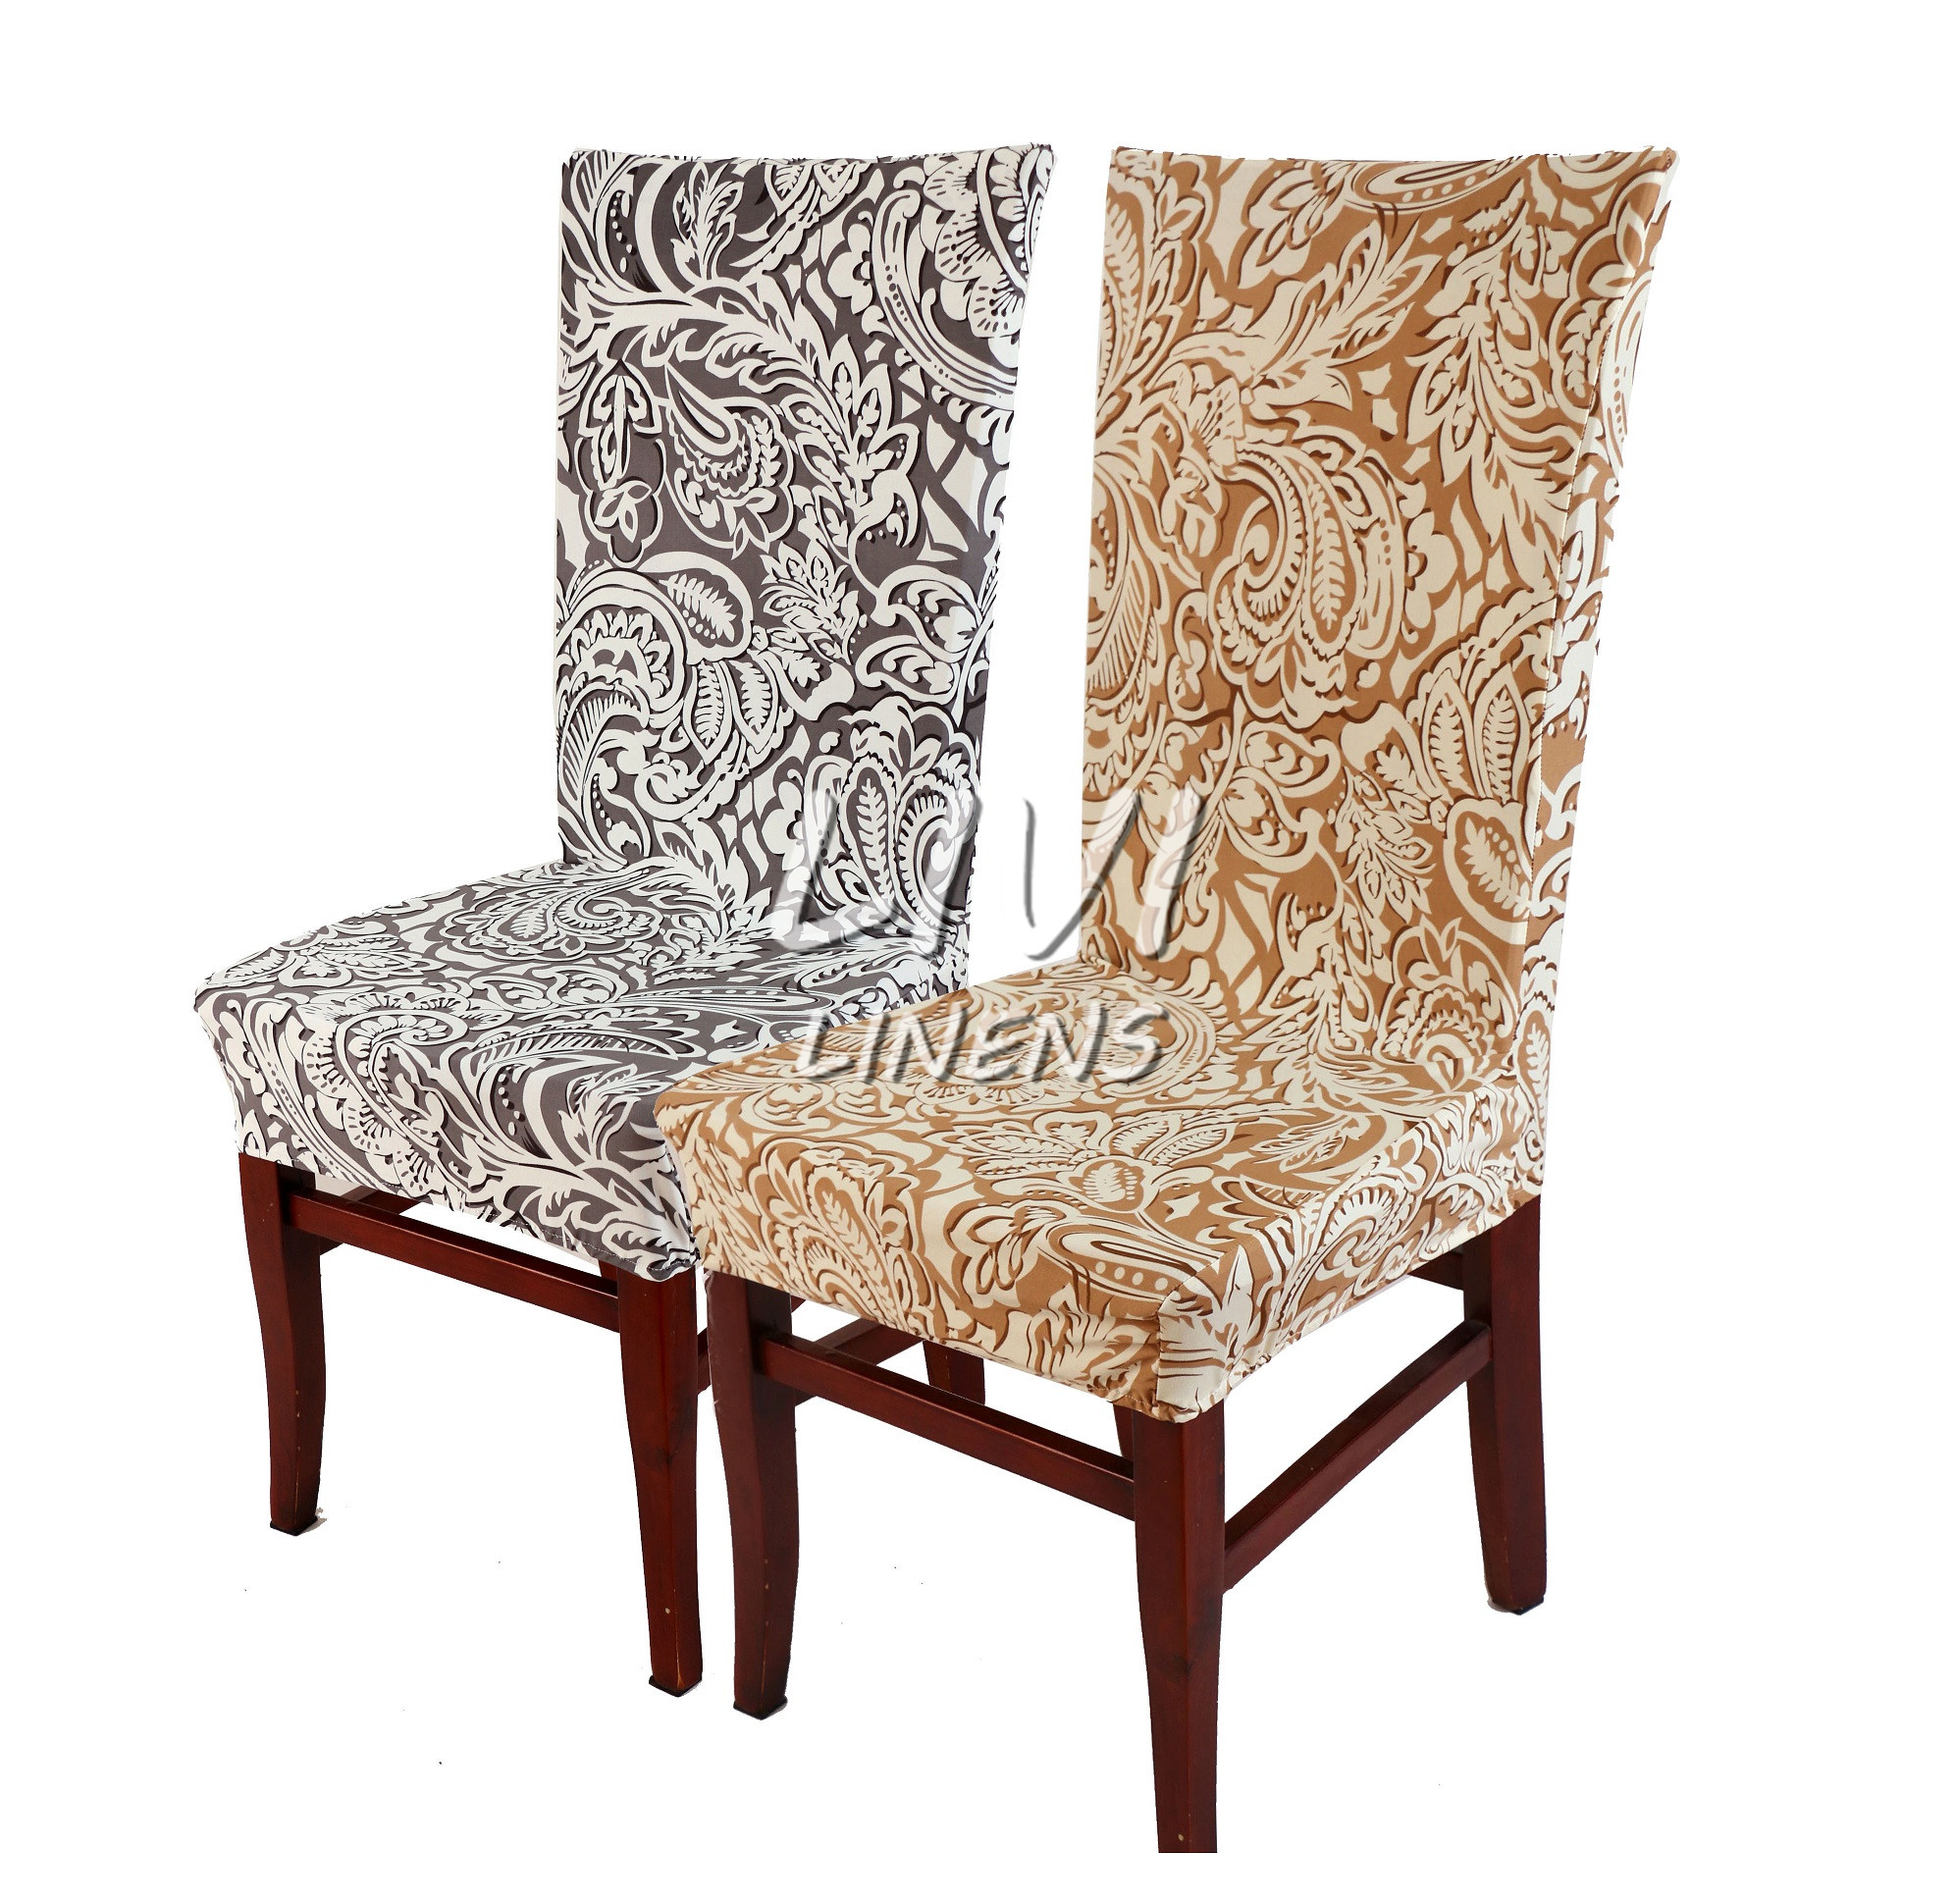 Dining Chair Covers In Store Camping With Cooler Aliexpress Buy Super Fit Stretch Removable Washable